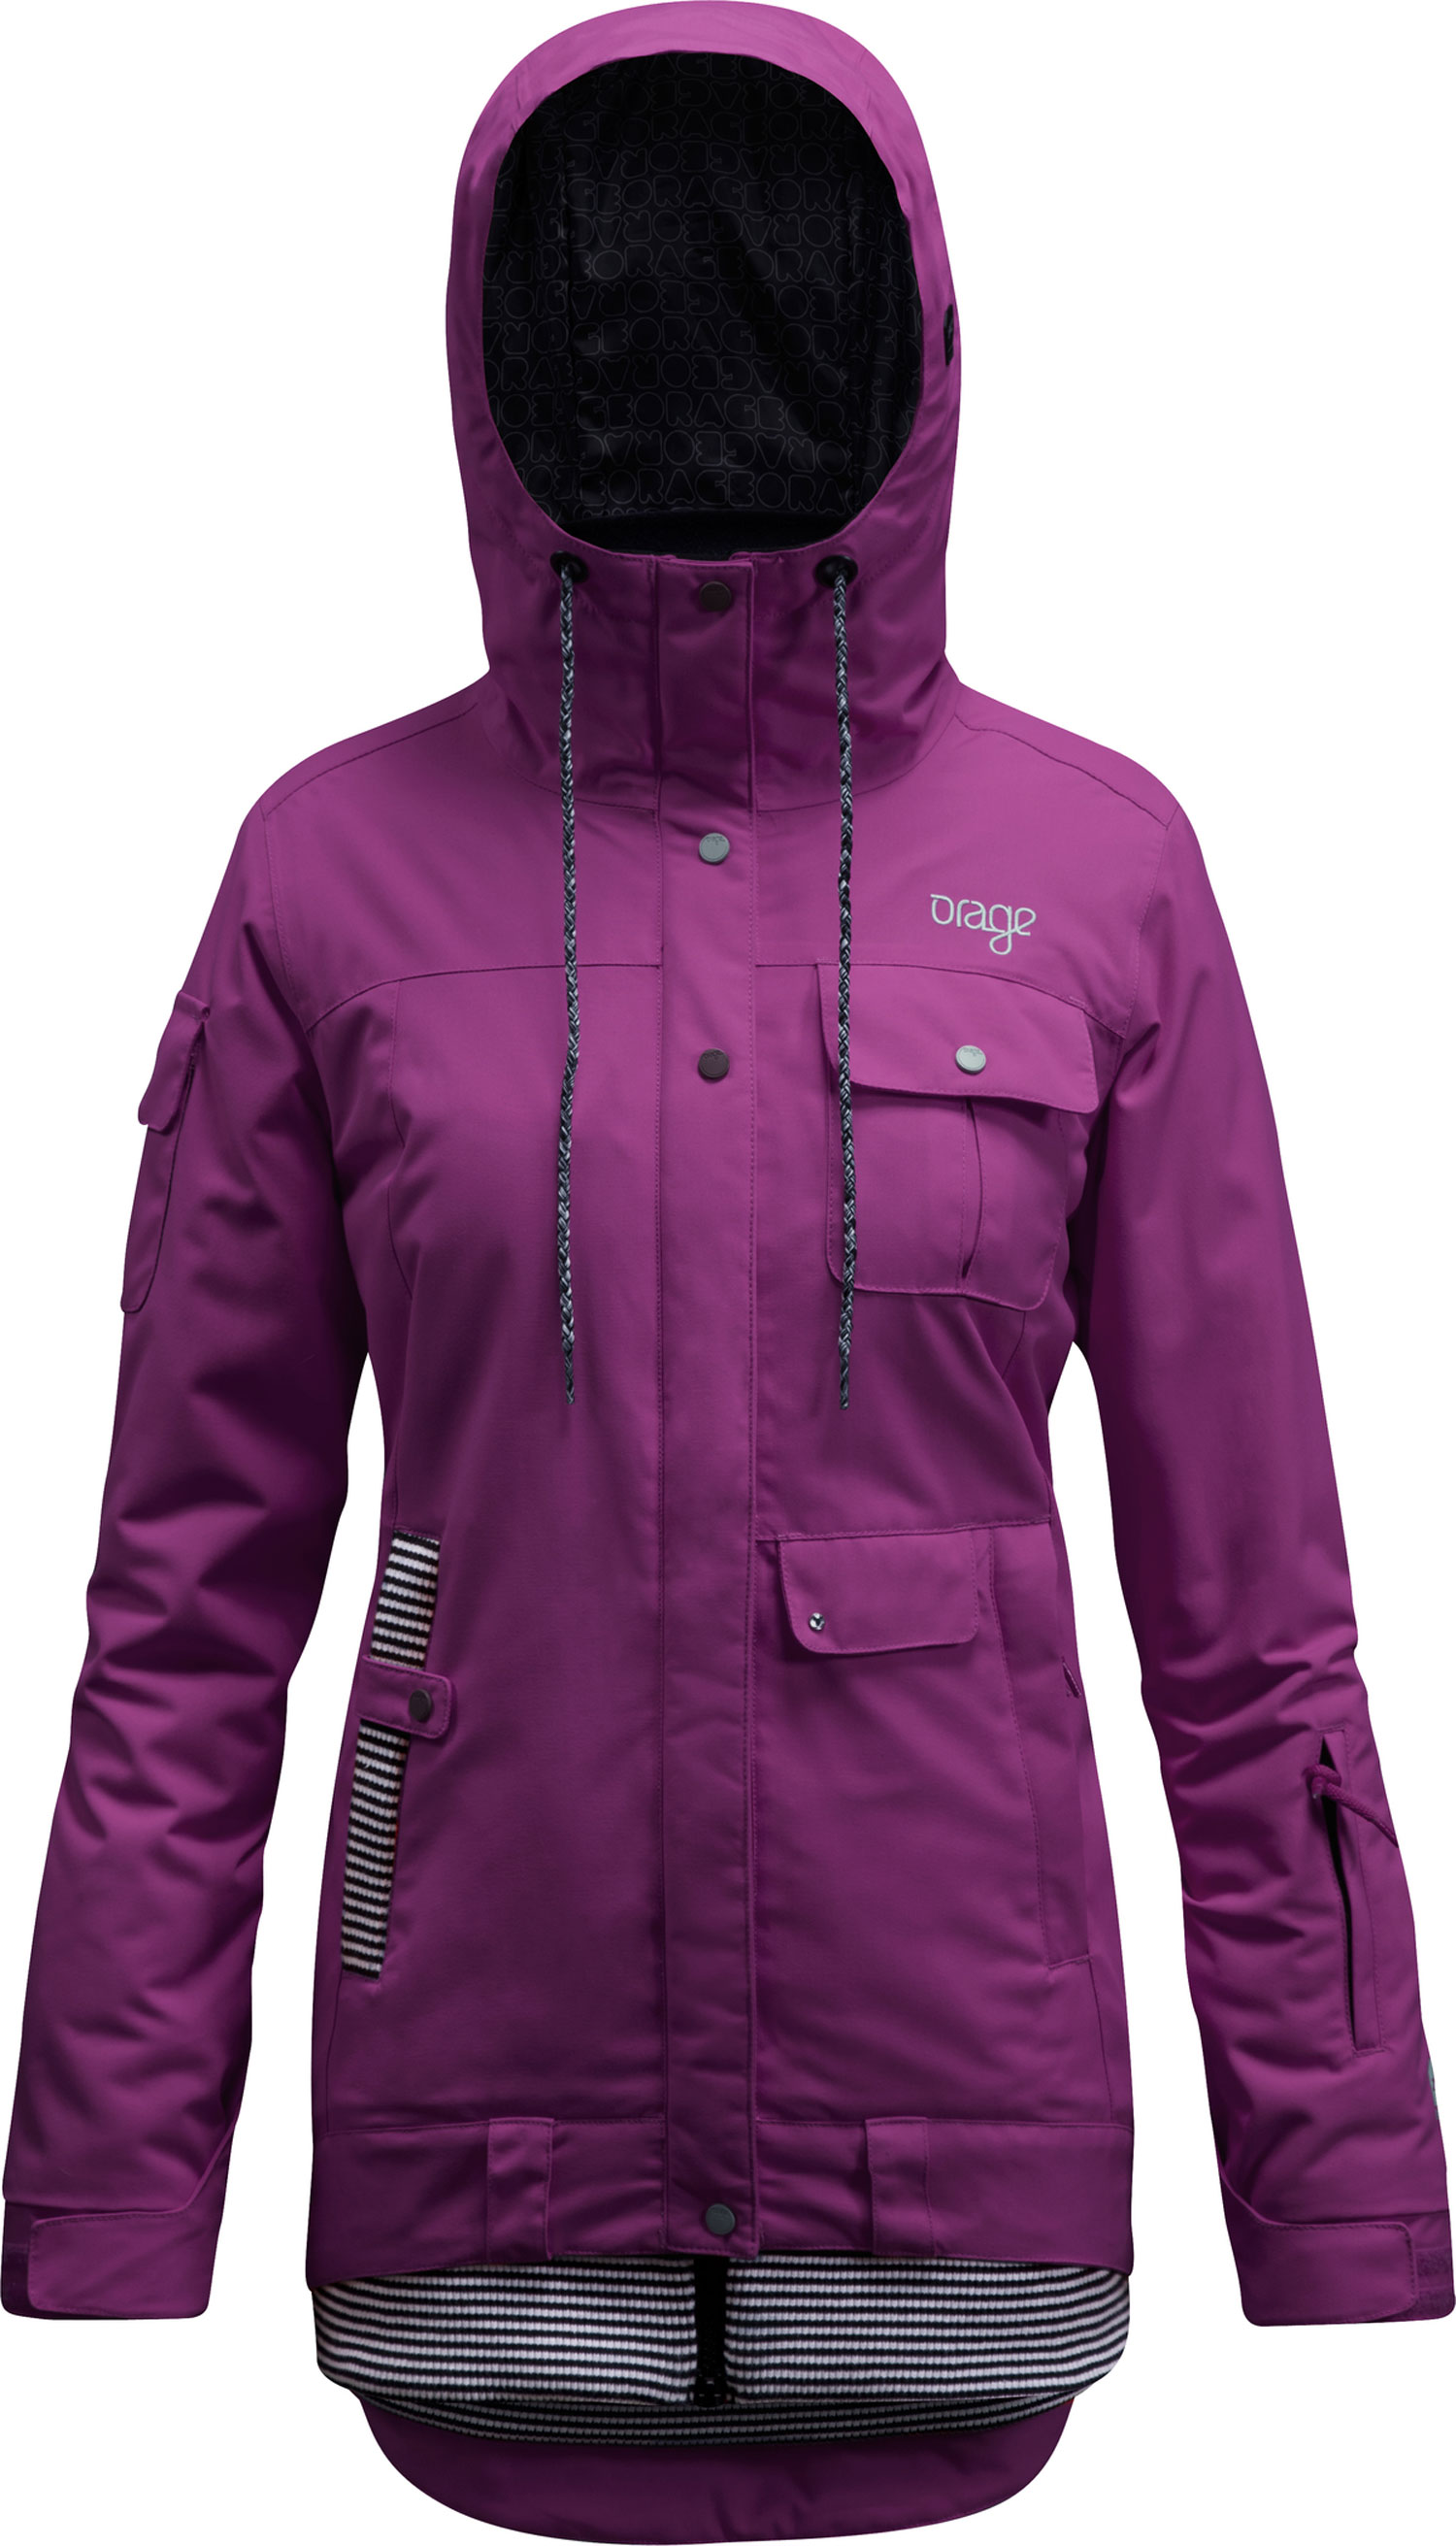 Ski Key Features of the Orage Kendra Jacket: Prime 10: Canvas 2 ply 100% Nylon, ECO DWR80/10, 185g/m2 Strategically seam sealed Pit zips Antimicrobial hand cuffs Printed lining with fleece panel insert - $209.95